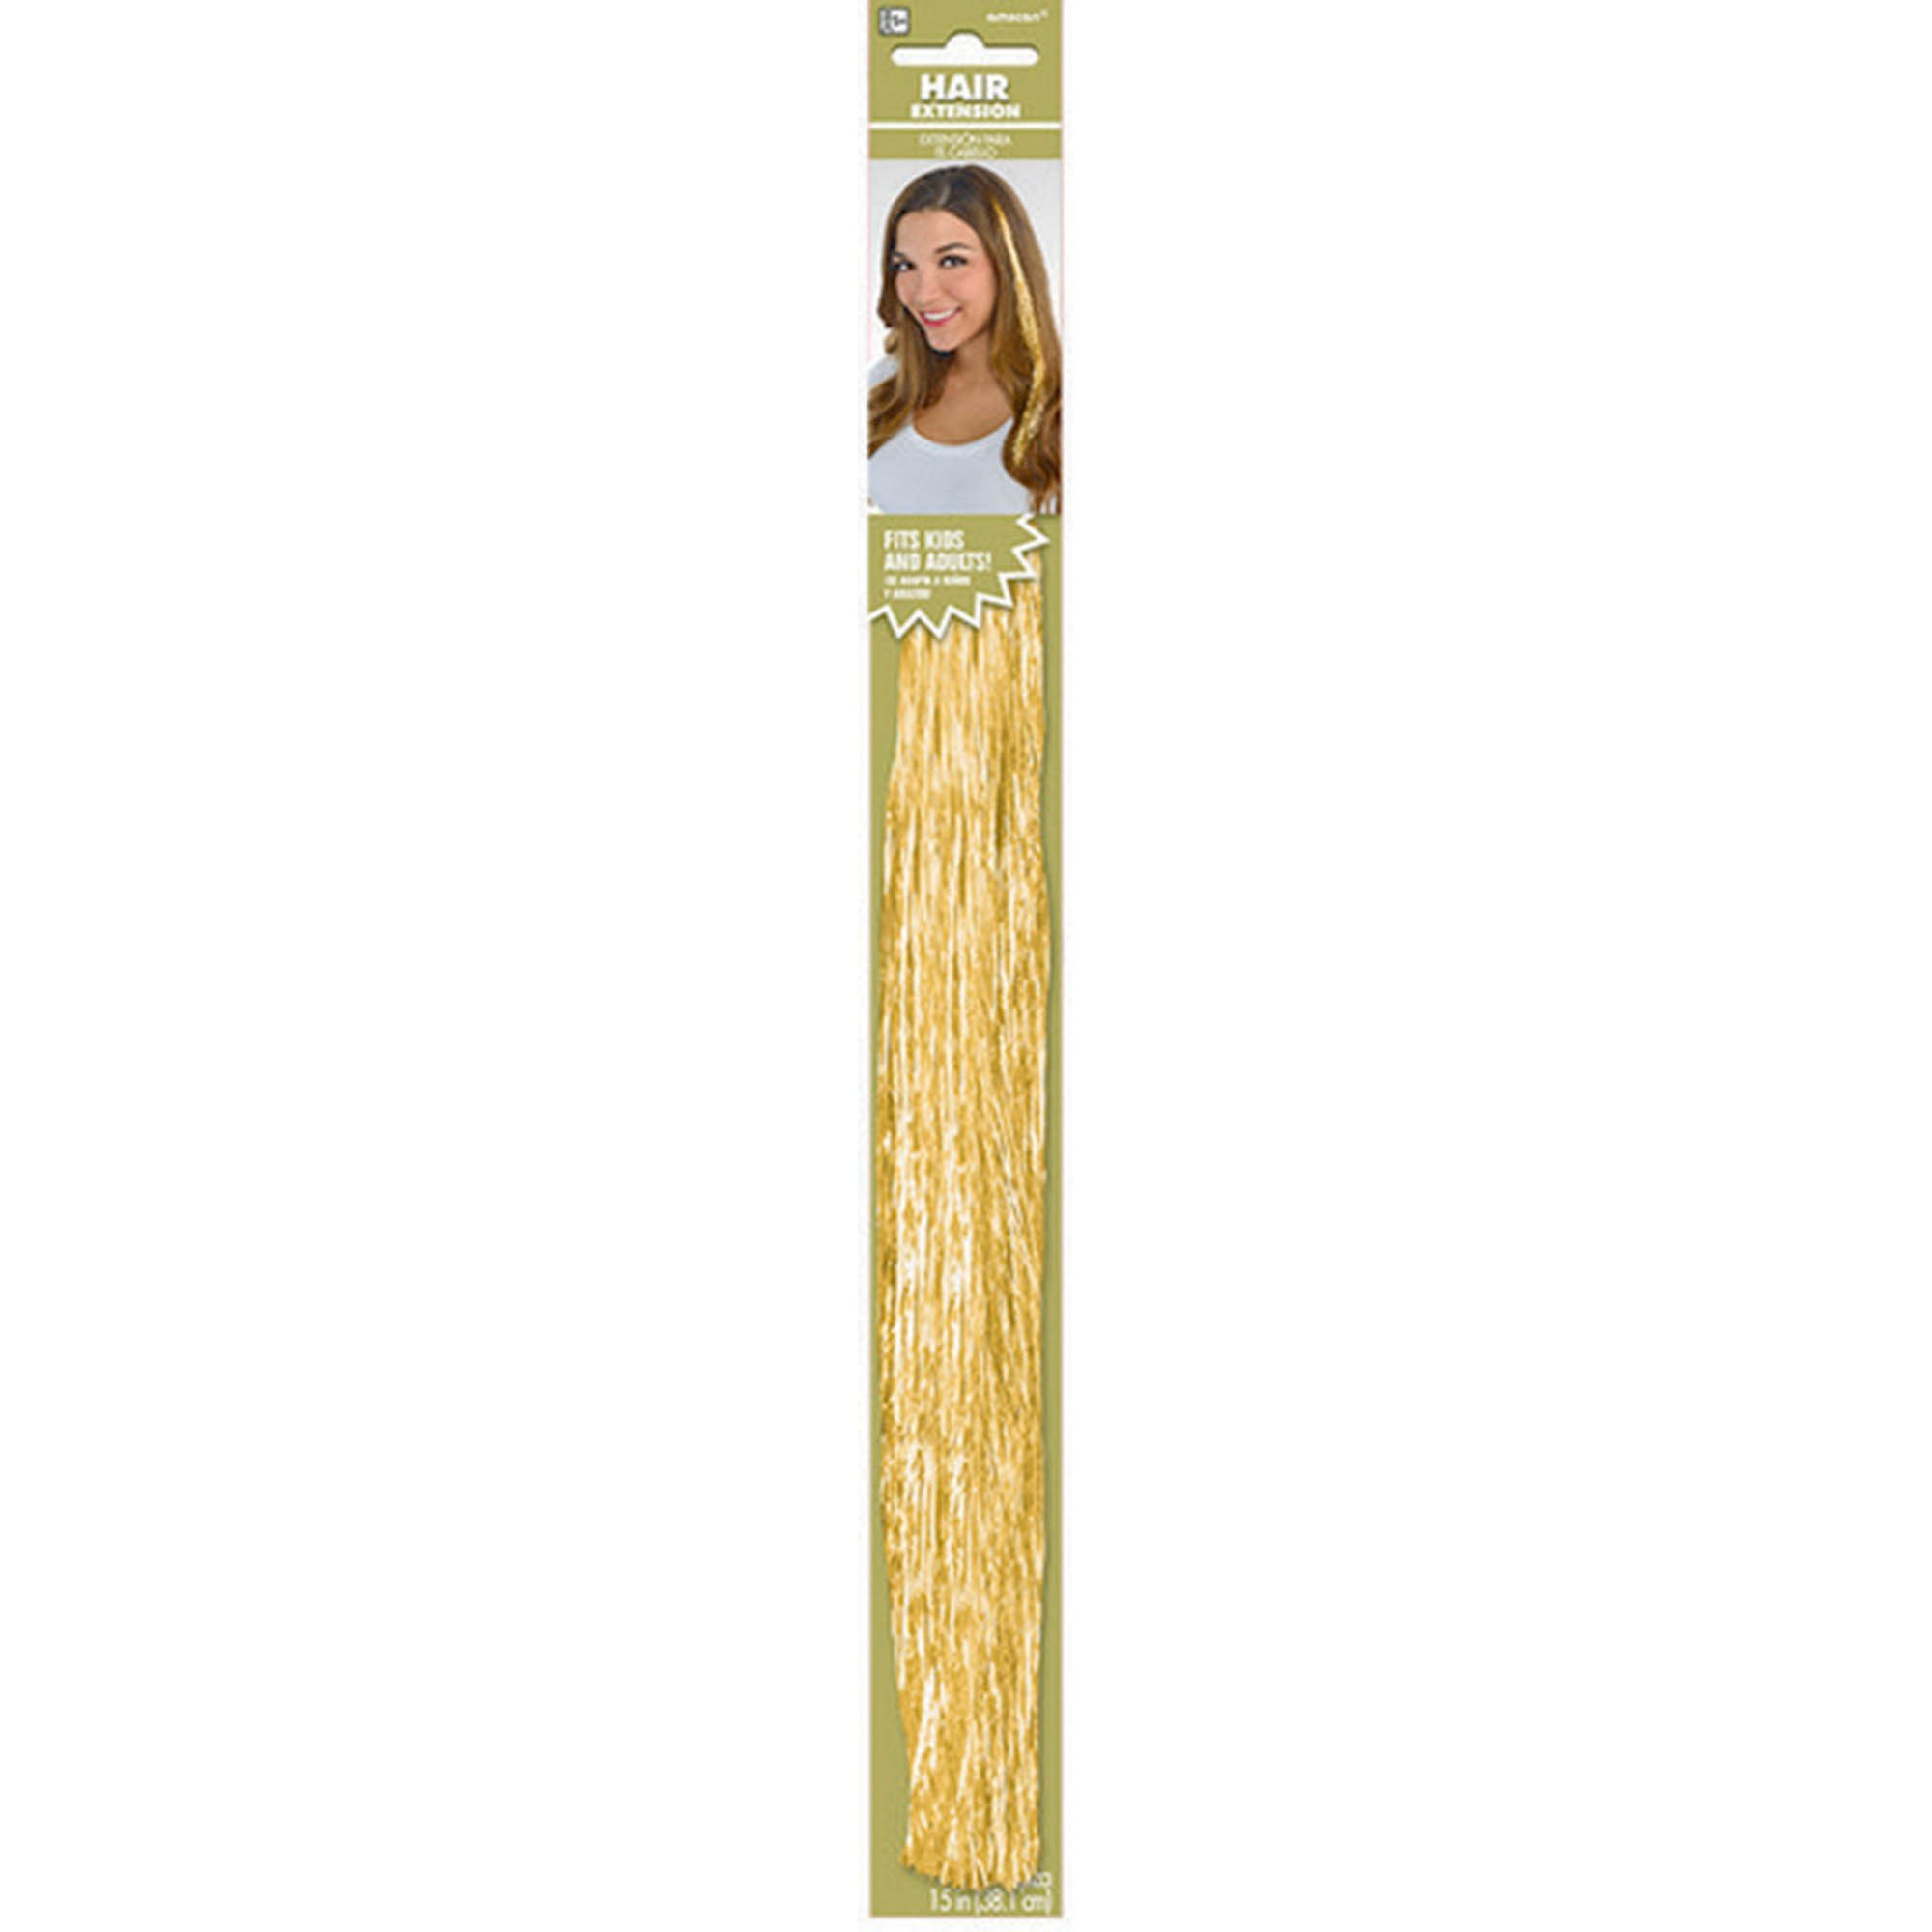 Hair Extensions - Gold